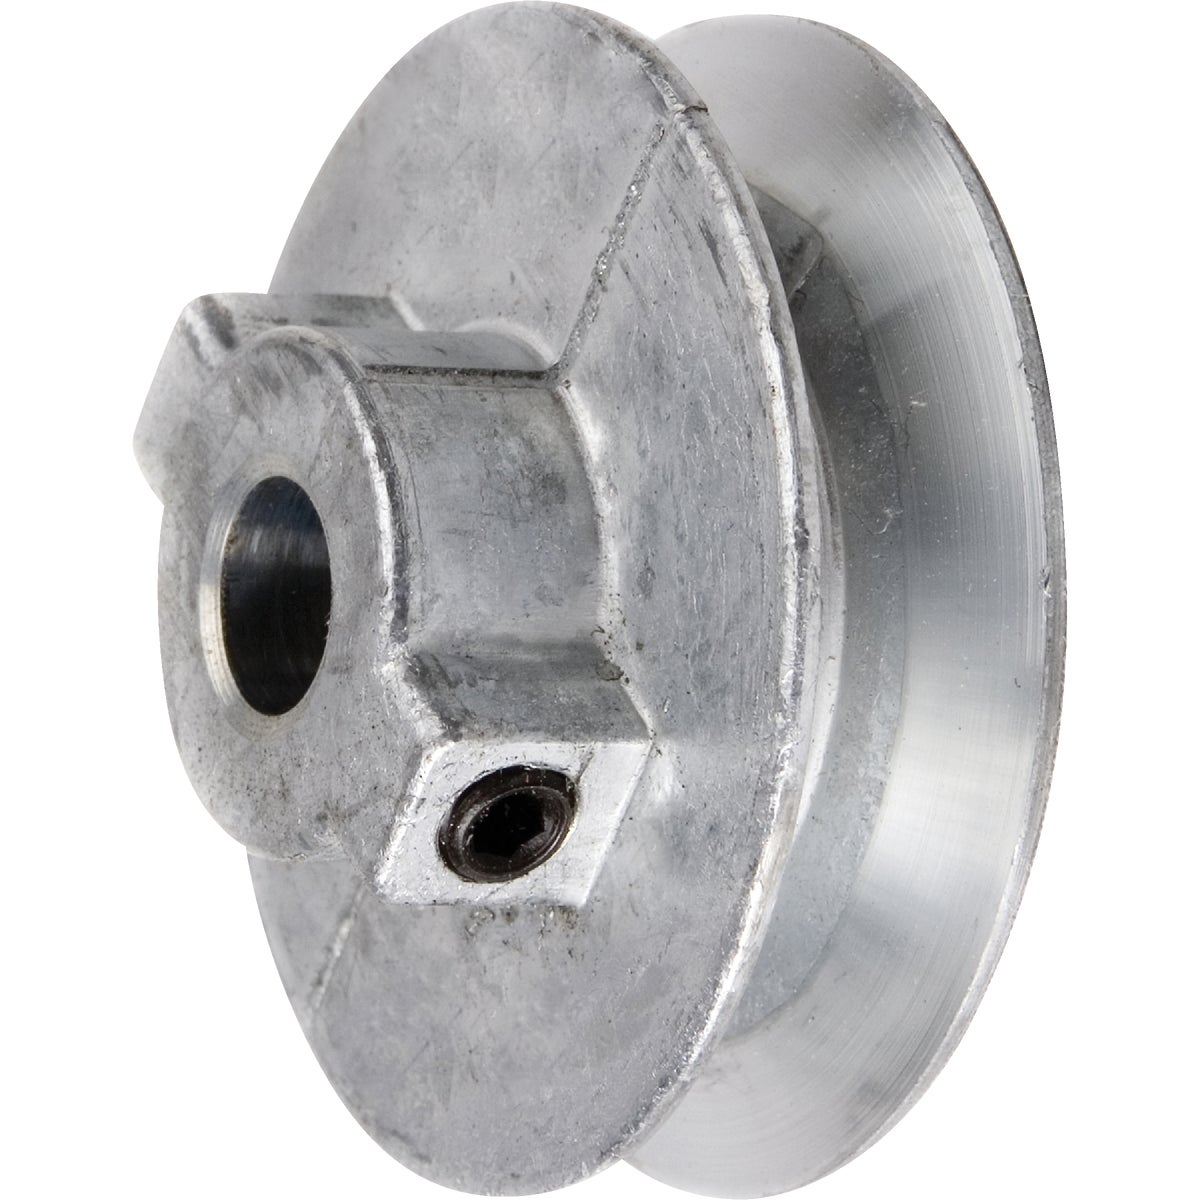 8X1/2 PULLEY